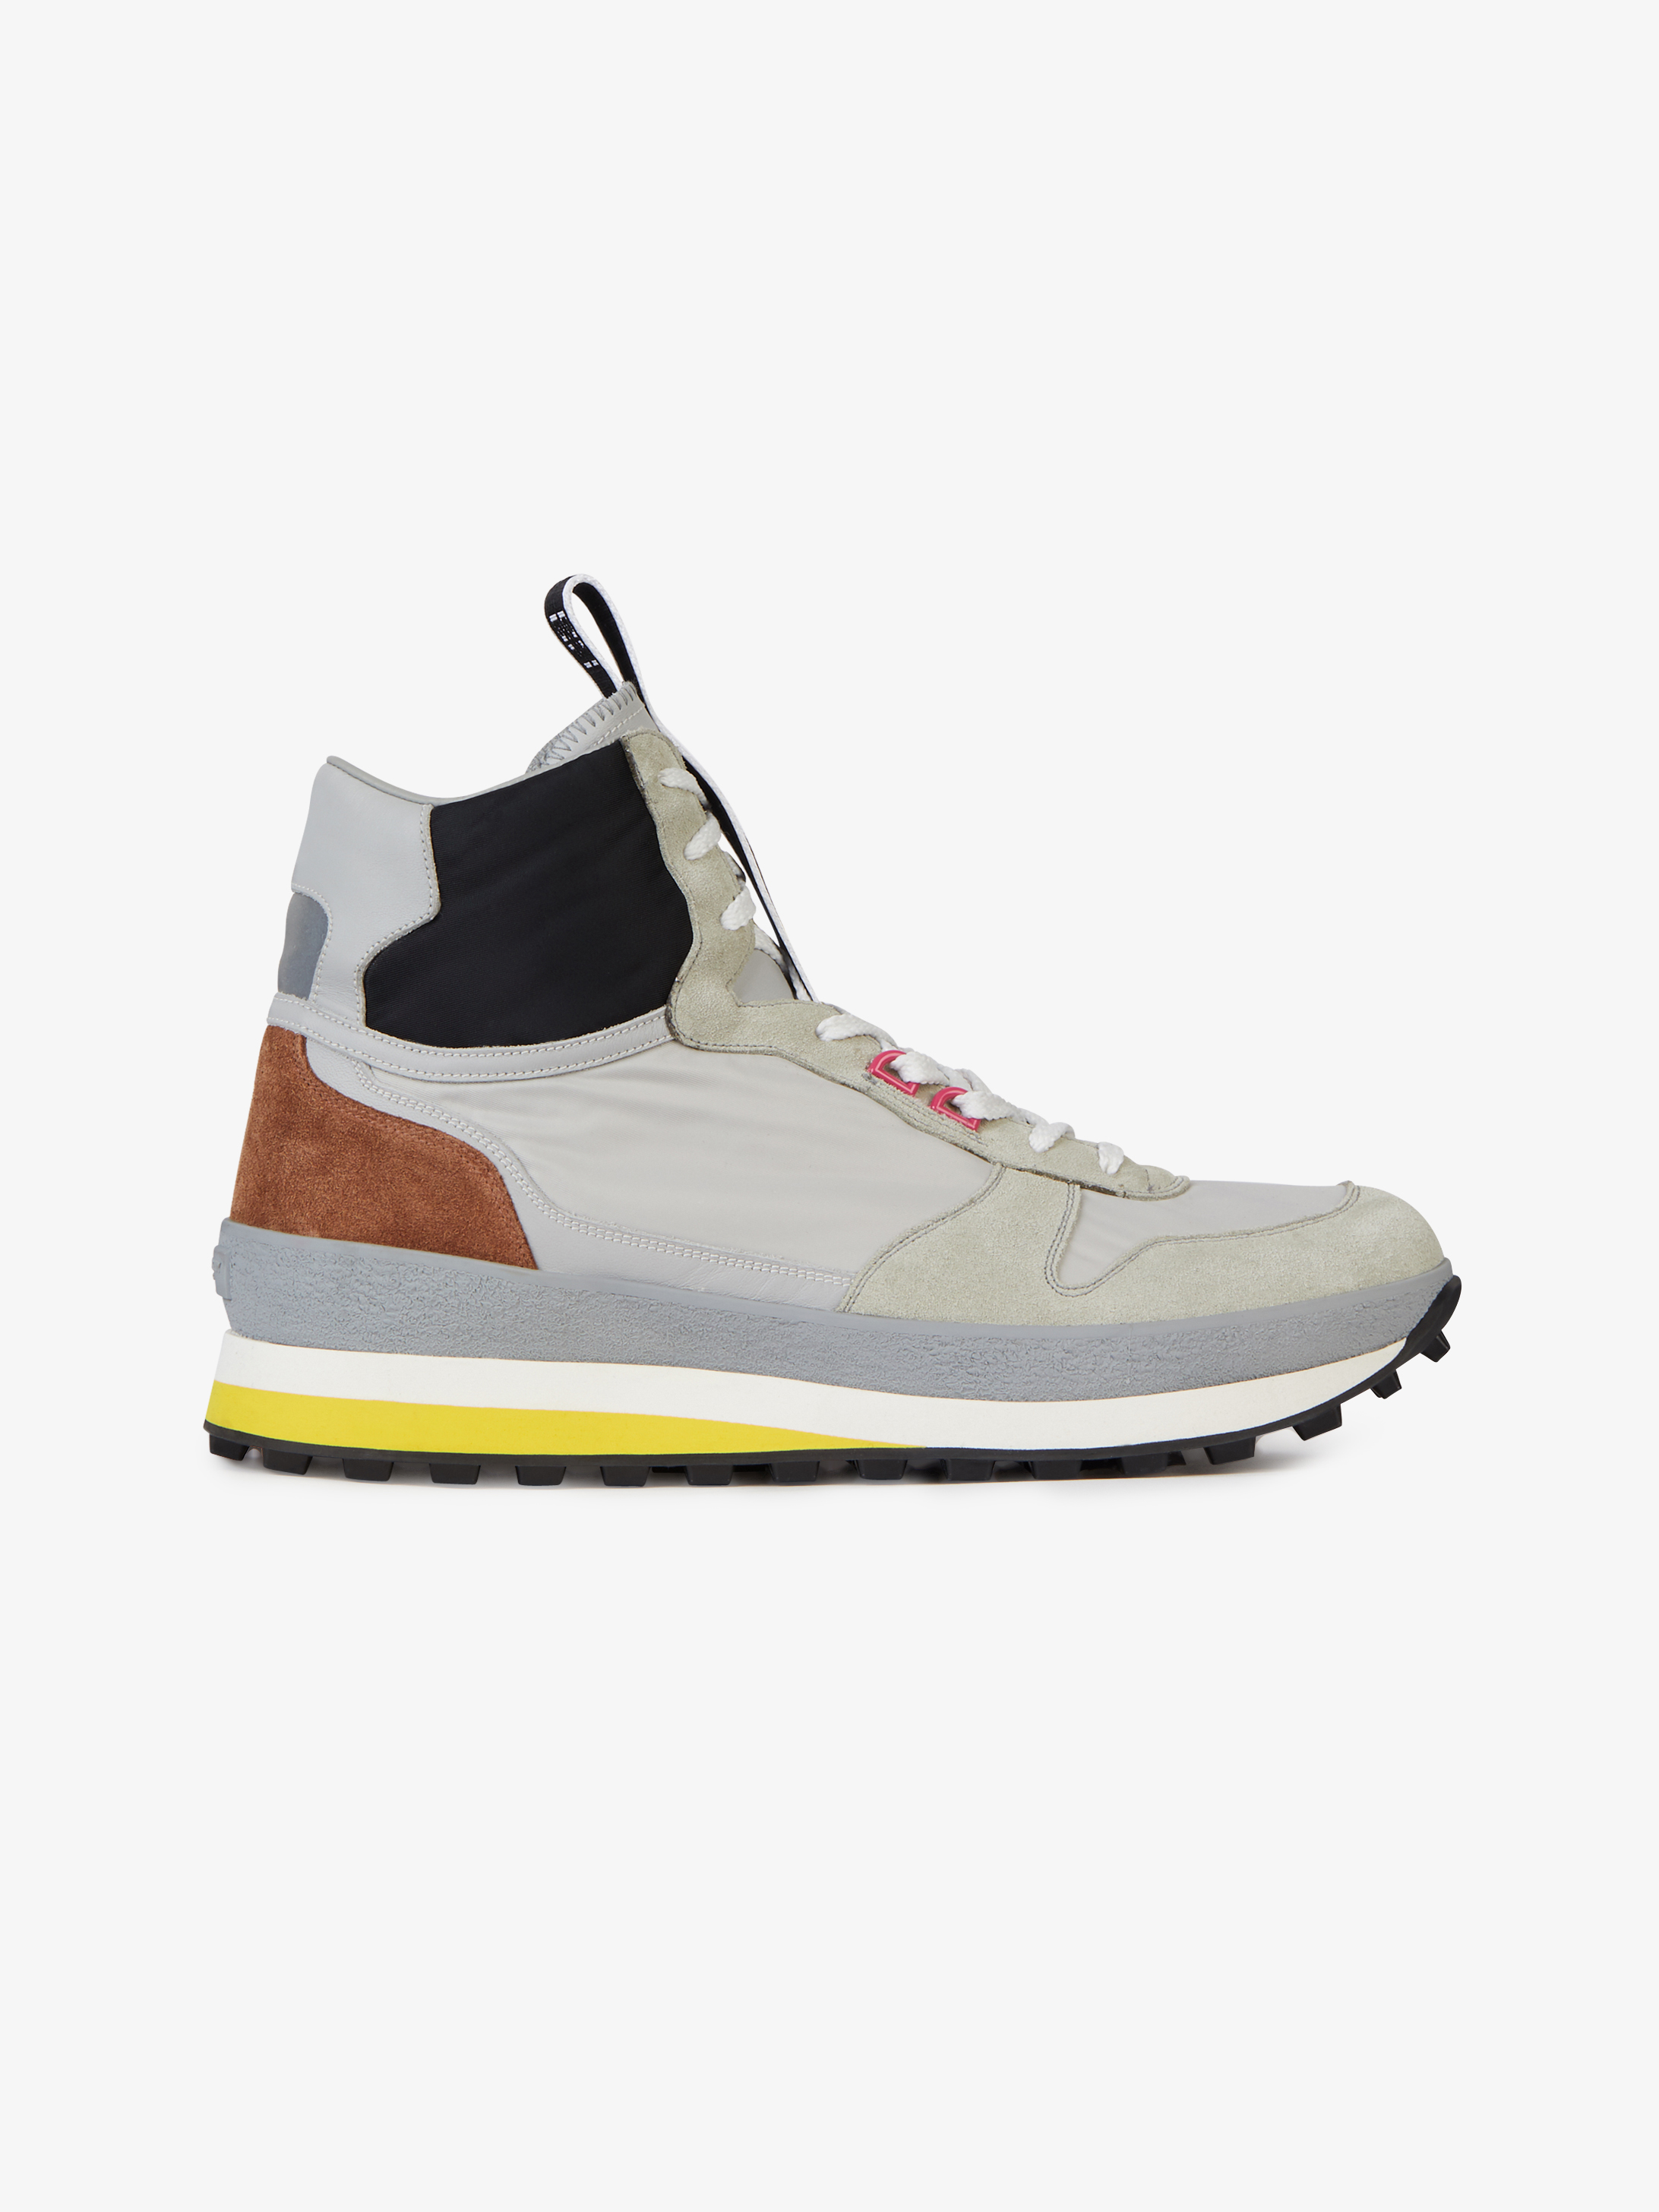 Runner sneakers in suede, leather and nylon